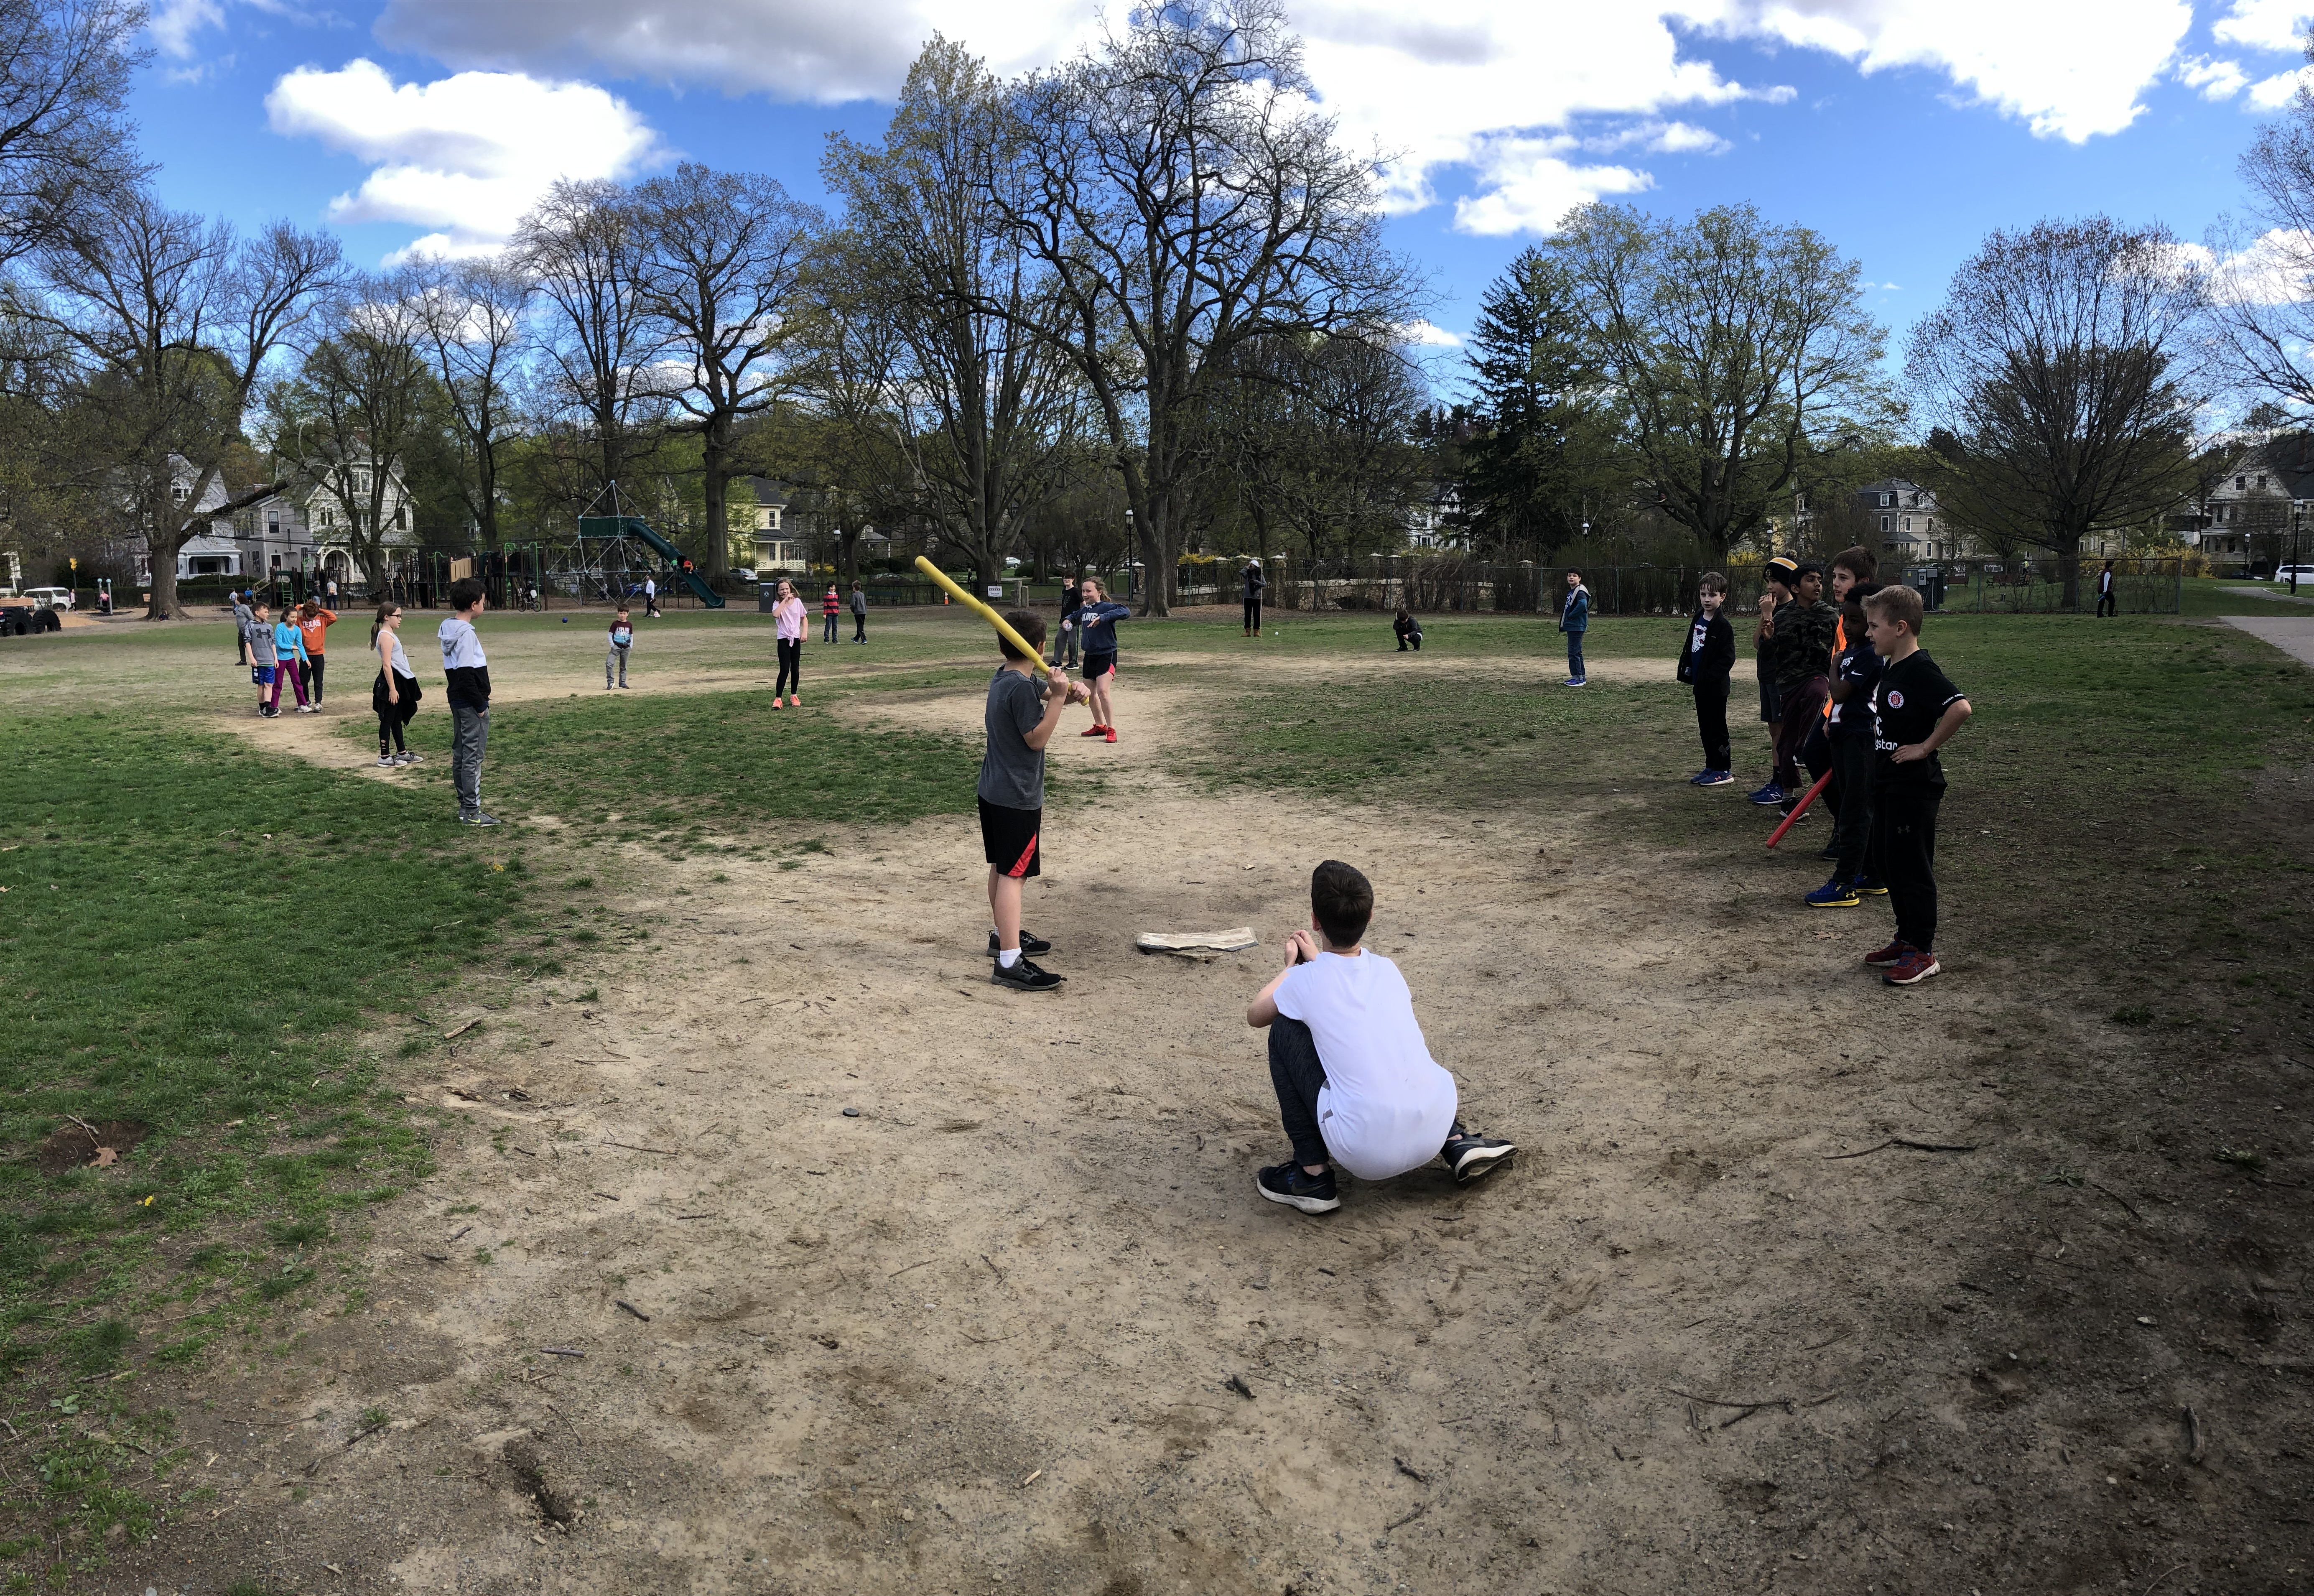 Wiffle ball game during recess